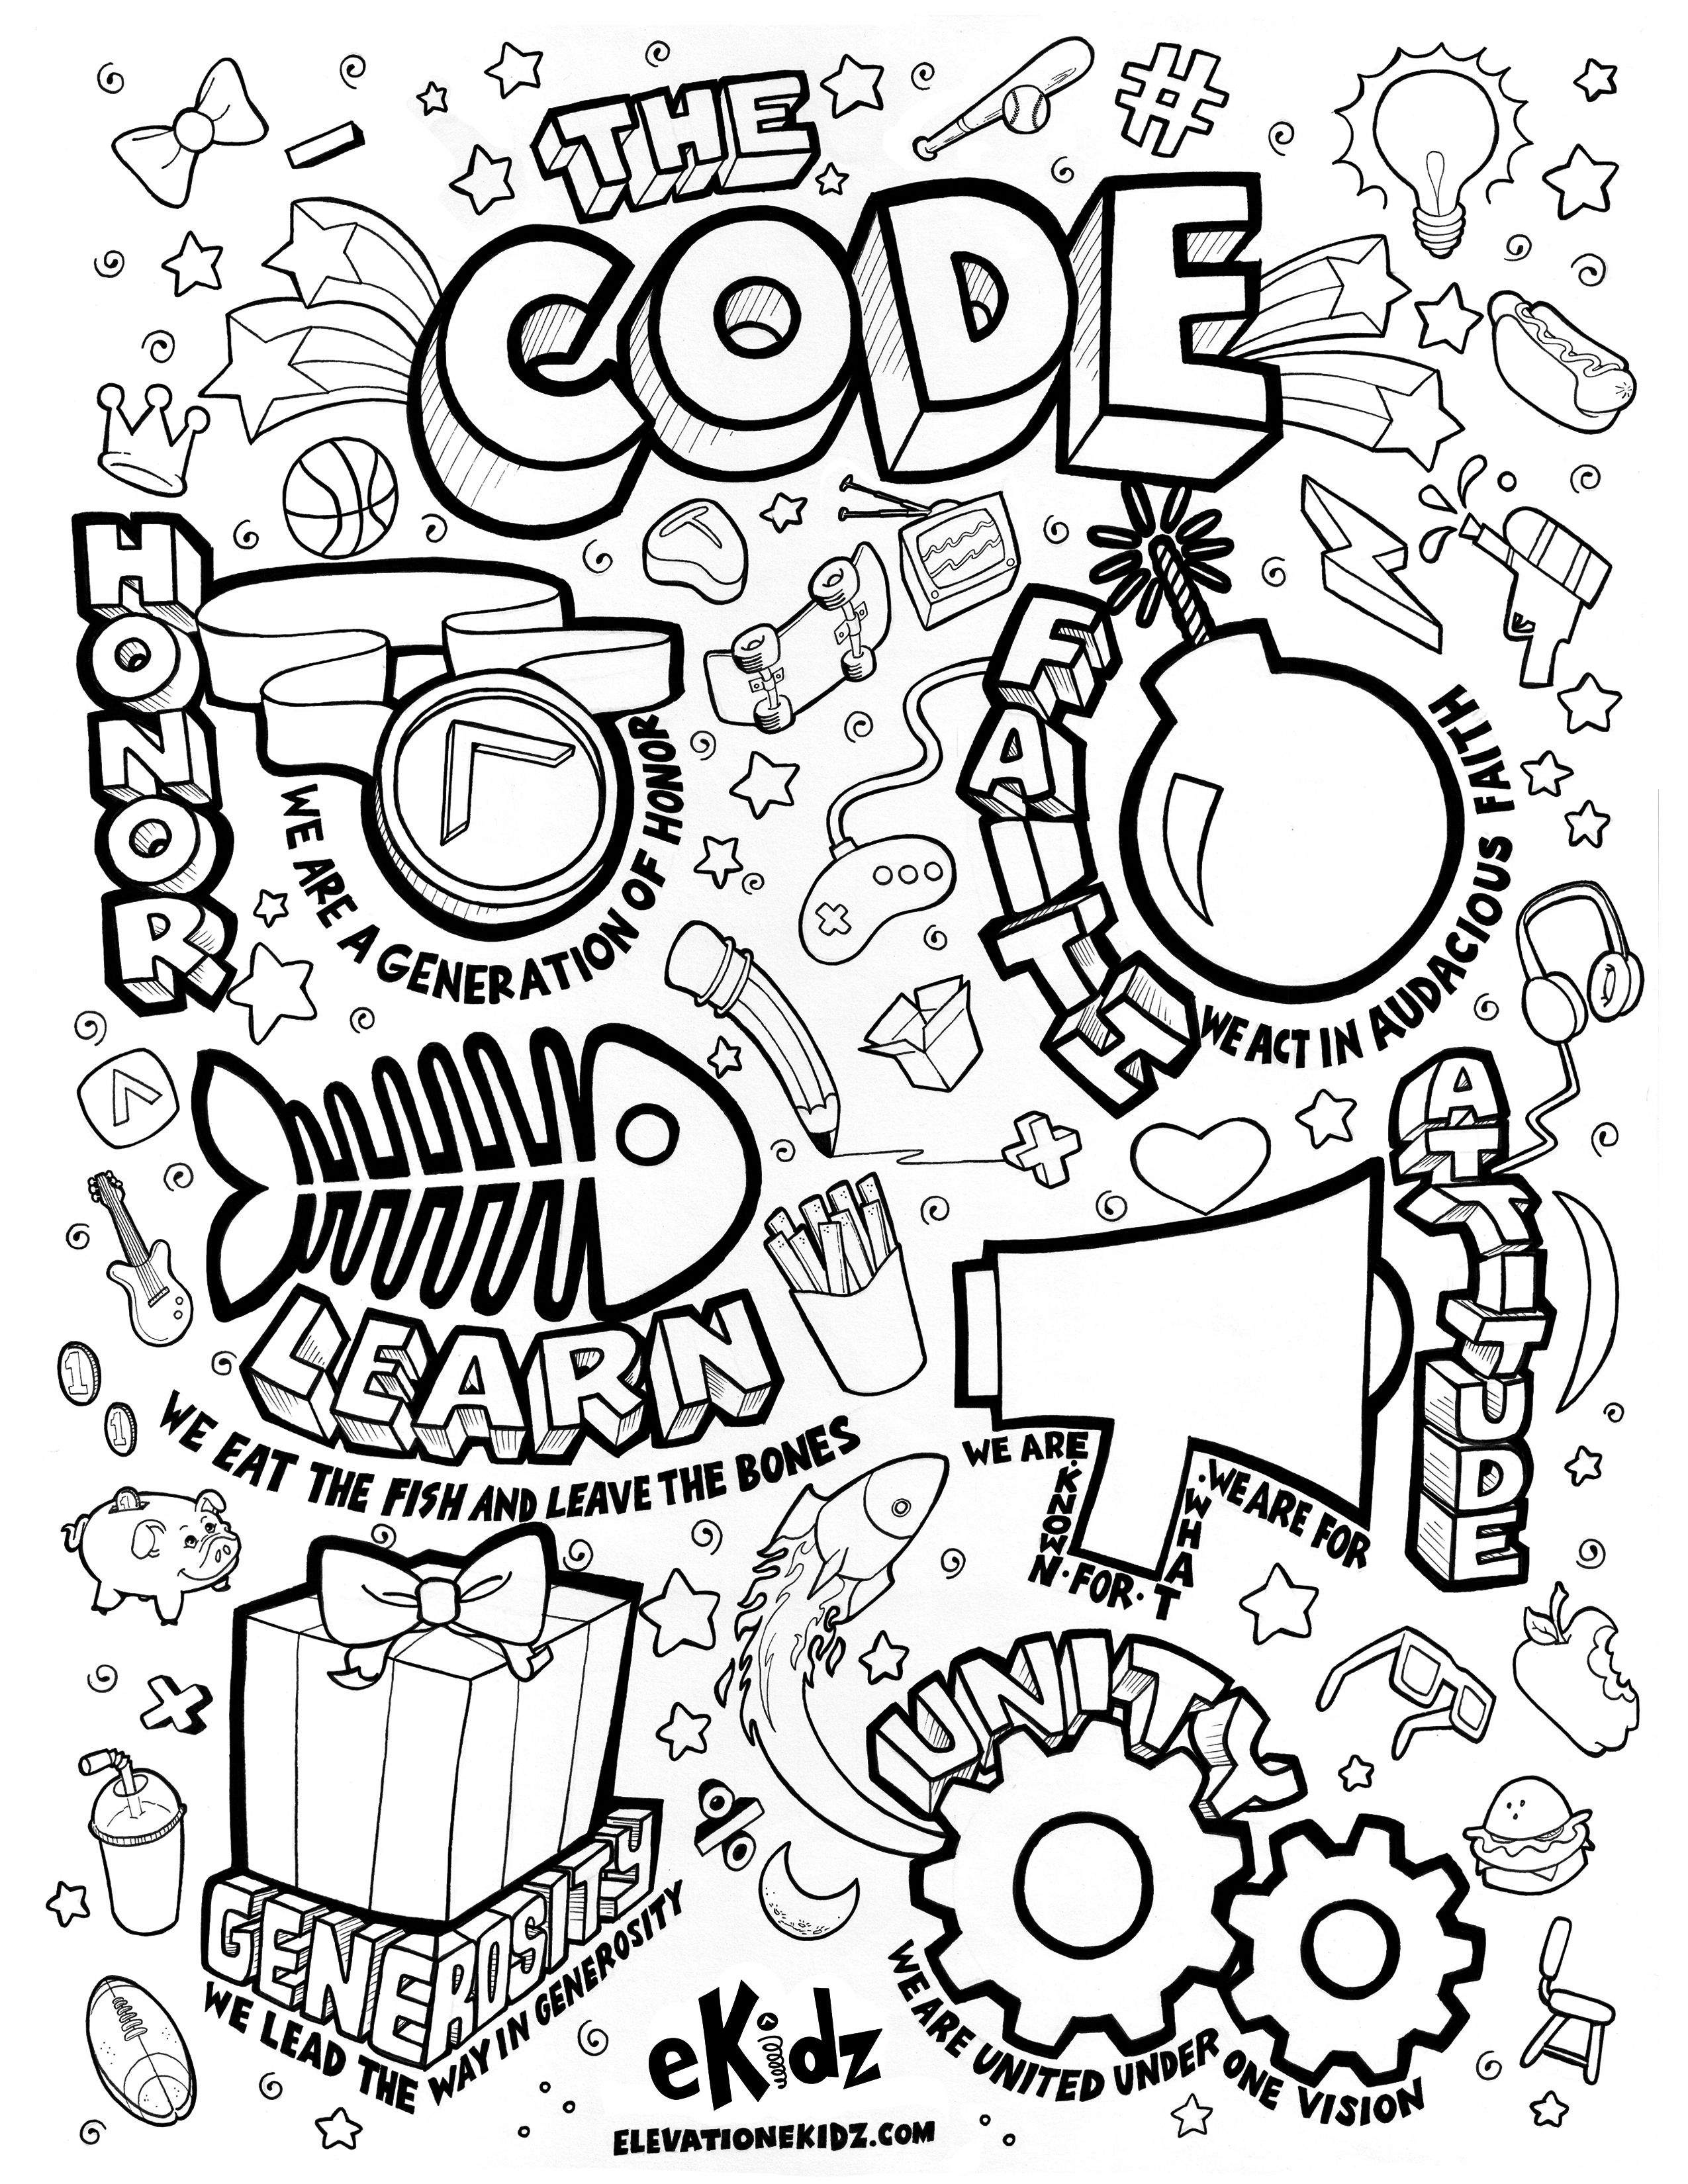 Elevation Church Sunday School Coloring Book | Coloring Page